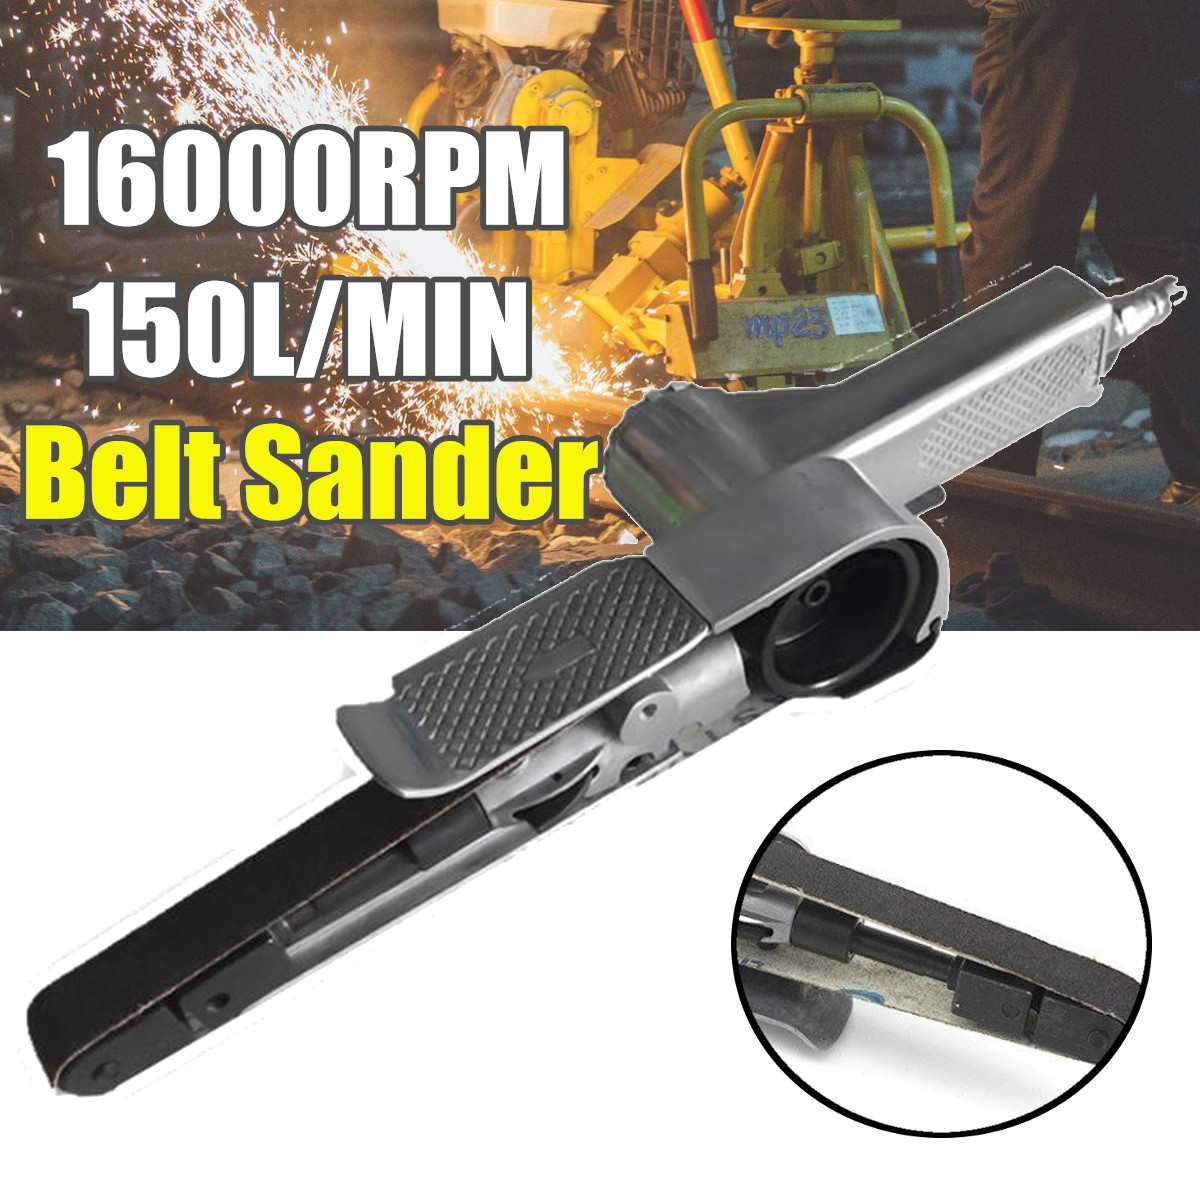 16000RPM 150L/MIN 1/4Air Belt Sander 25 Belts Sander Pneumatic Tools Handheld Grinder Polishing Machine Wrench Power Tools Kit16000RPM 150L/MIN 1/4Air Belt Sander 25 Belts Sander Pneumatic Tools Handheld Grinder Polishing Machine Wrench Power Tools Kit